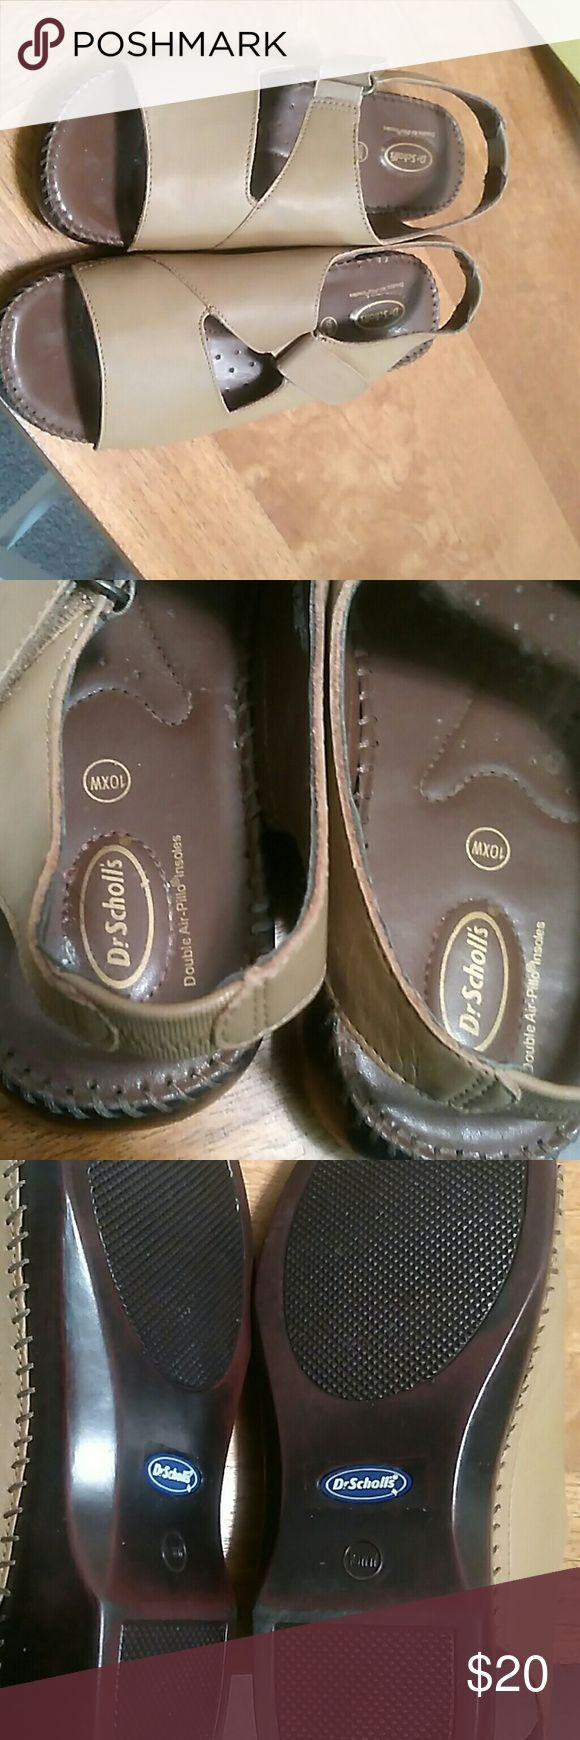 Shoes Women comfortable Dr. Scholl's sandals with Velcro fastener. Like new. Only been worn once. Dr. Scholl's Shoes Sandals